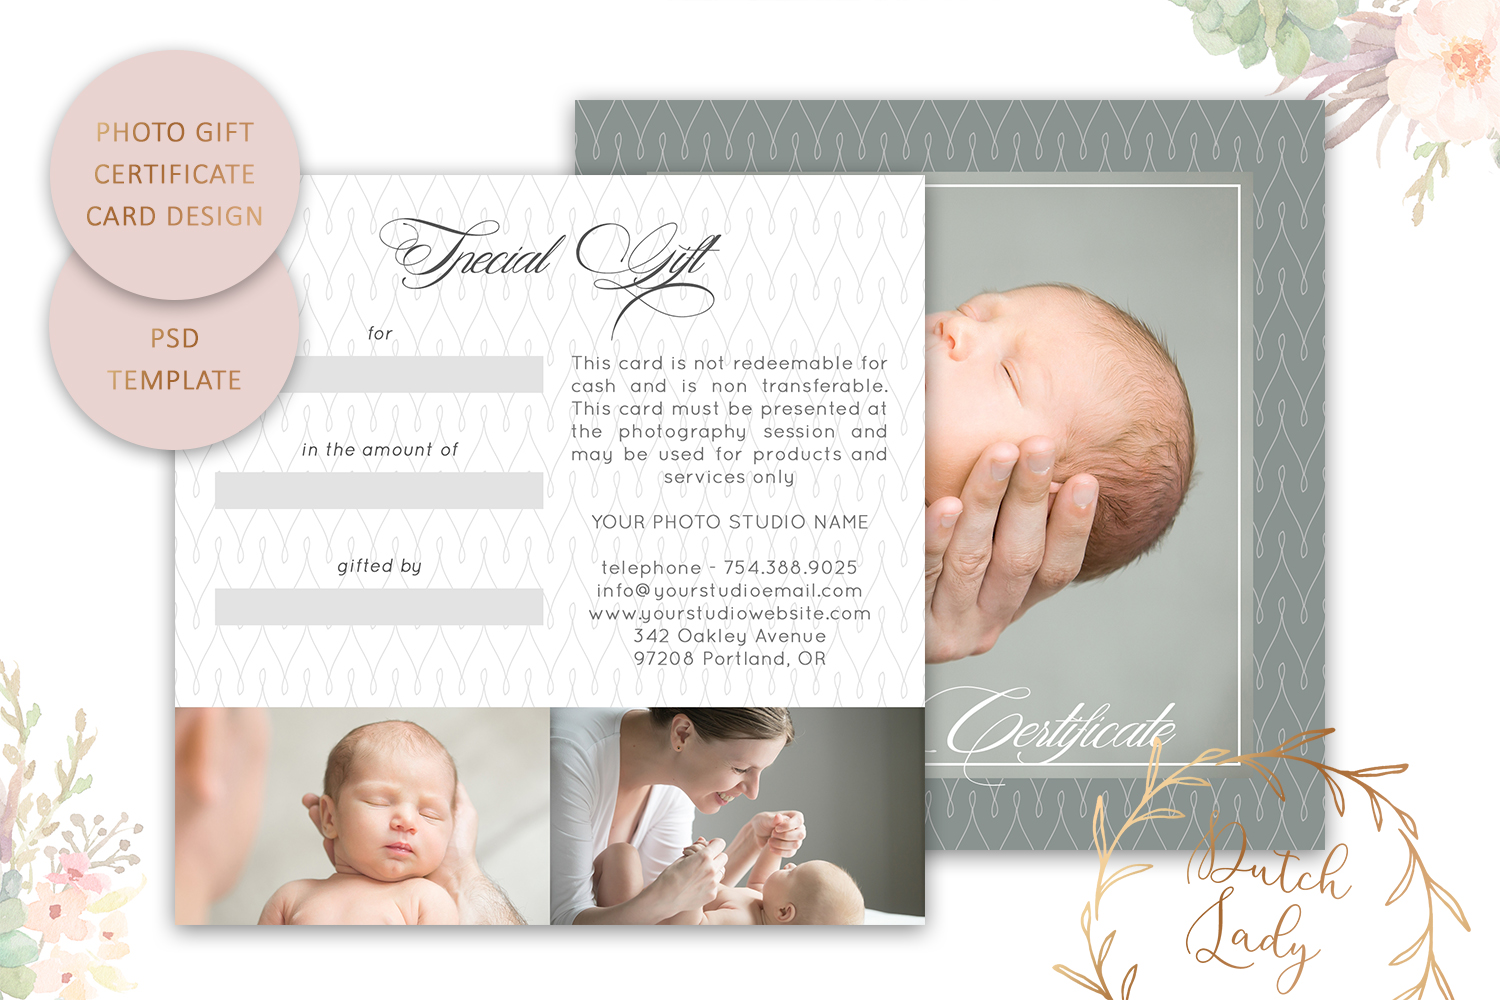 Photo Gift Card Template for Adobe Photoshop - #28 example image 2